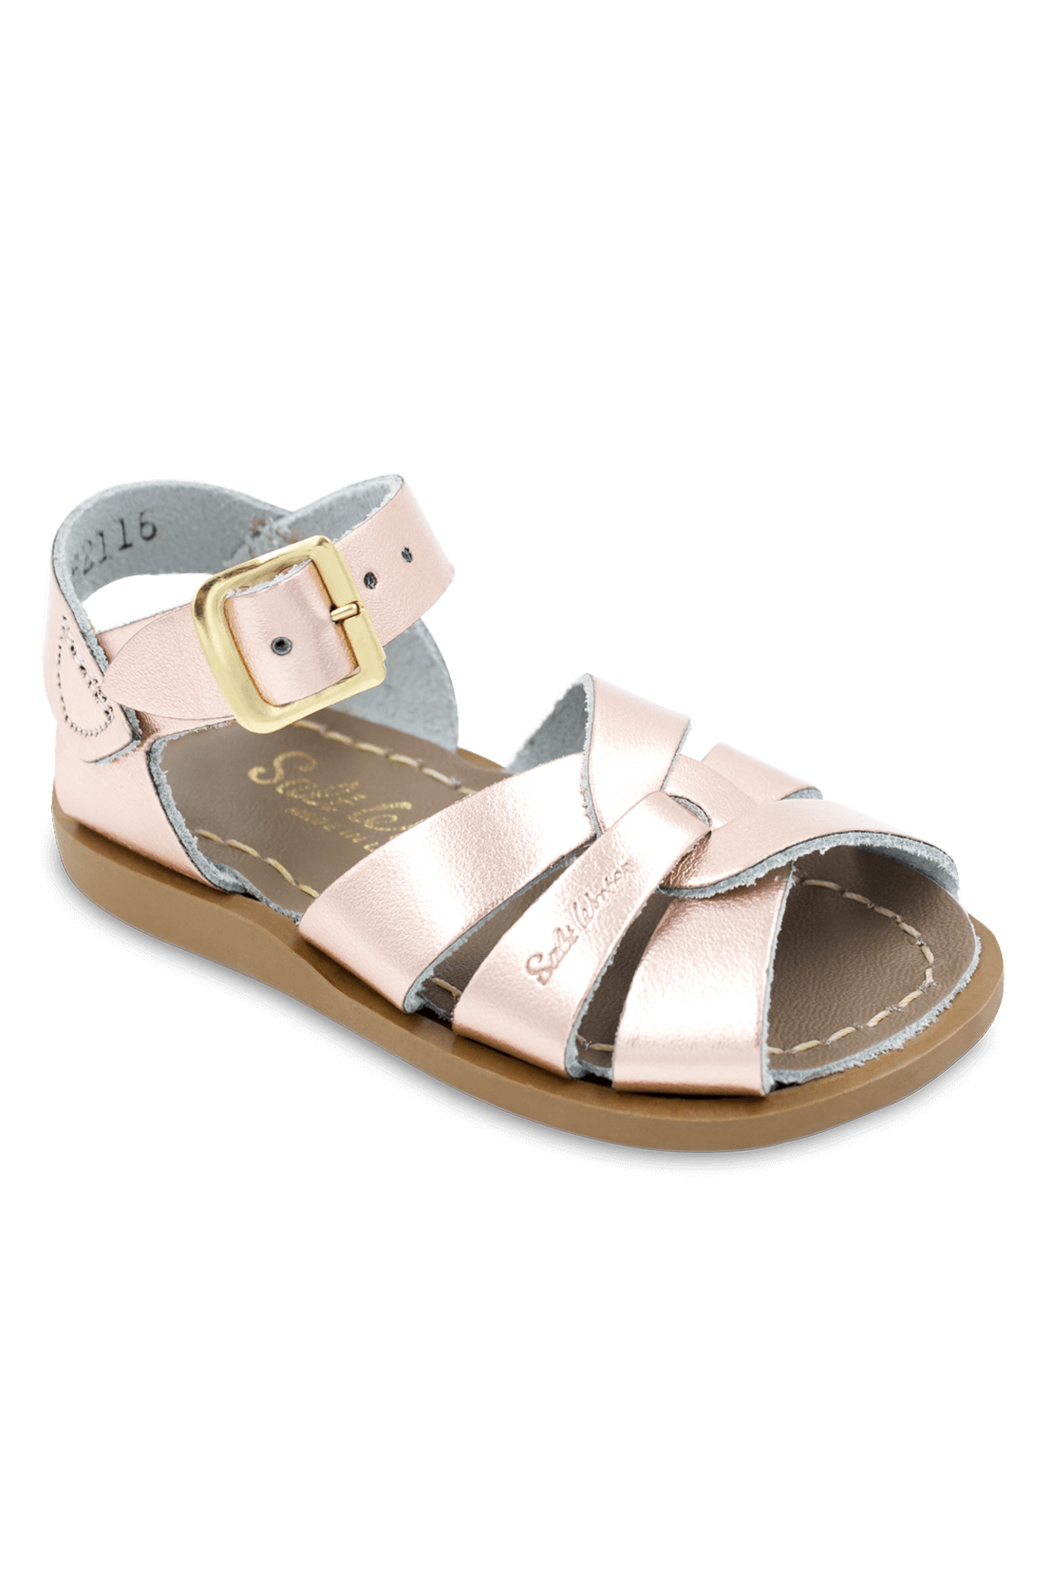 Hoy Shoes Salt Water Sandals Youth/Adult - Main Image